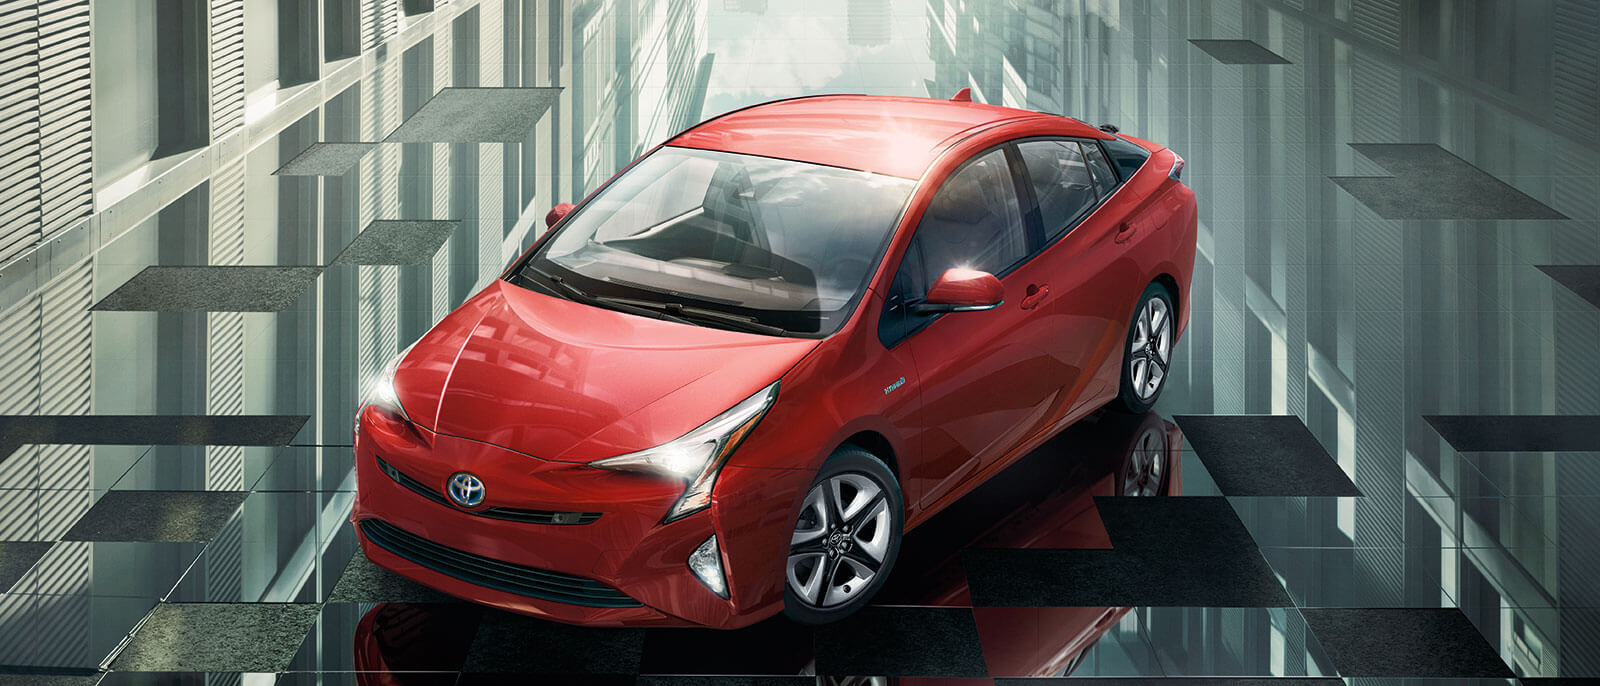 2016 Toyota Prius in red city view